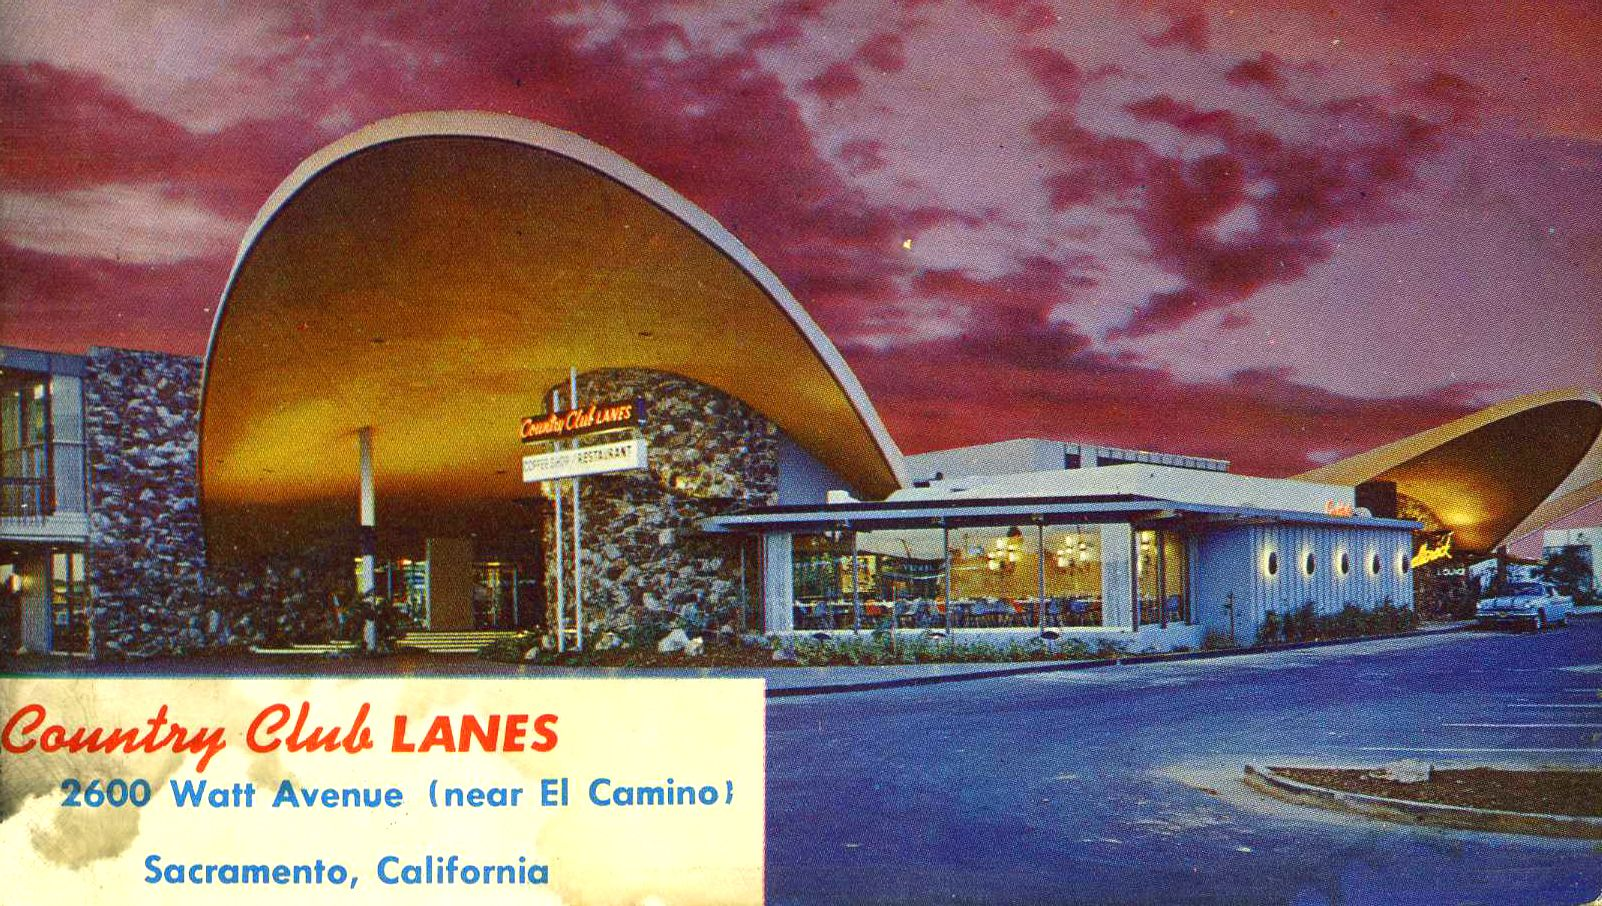 ...Country Club Lanes is shown in this c. 1960 postcard